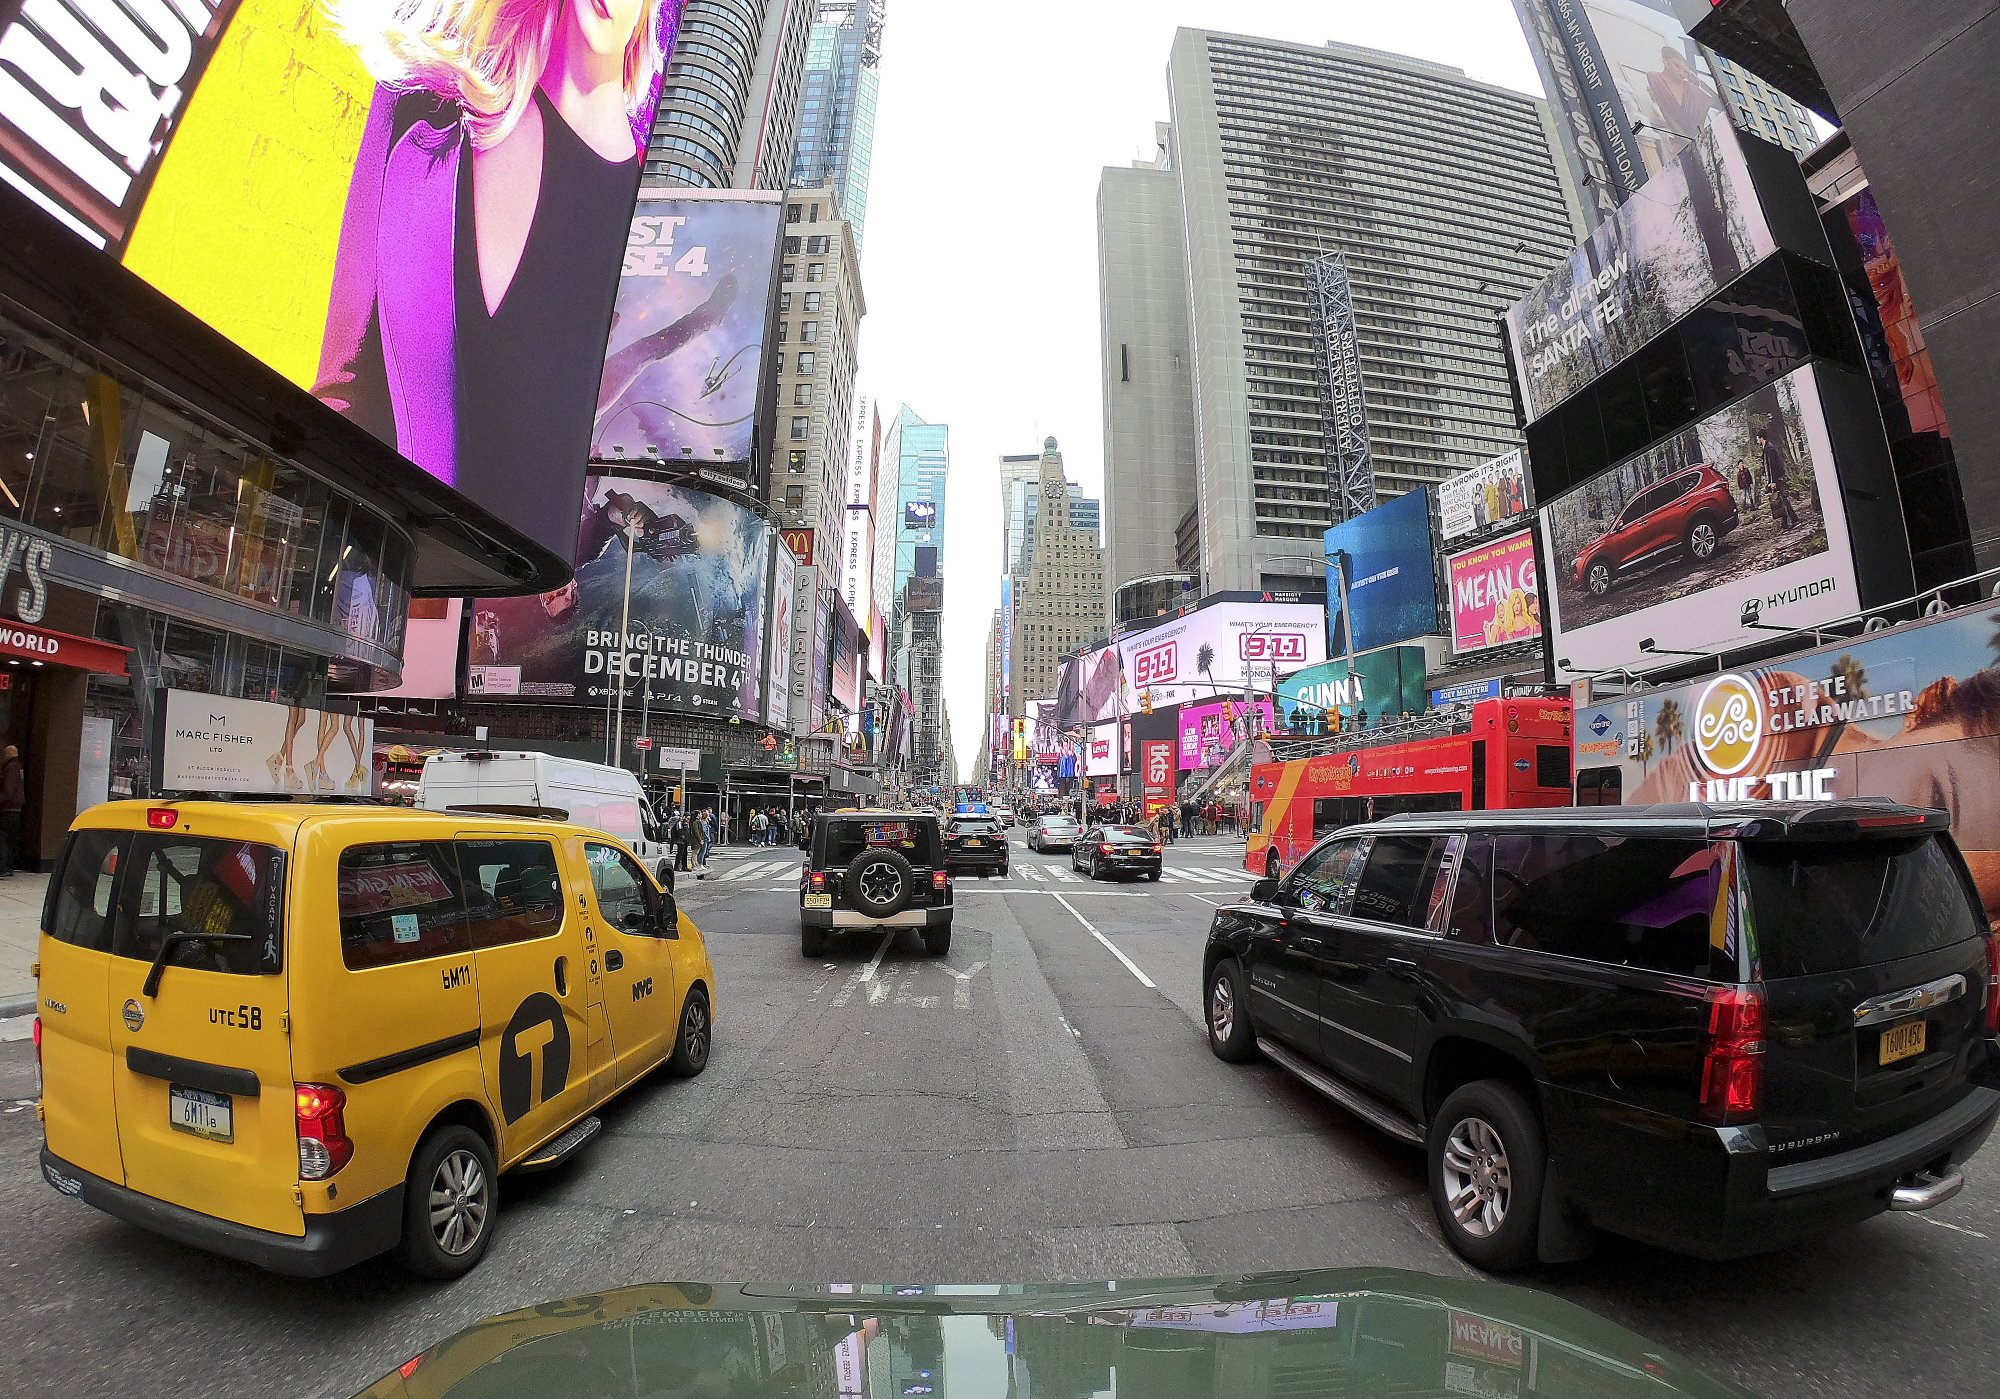 New York City may try tolling its way out of traffic mess